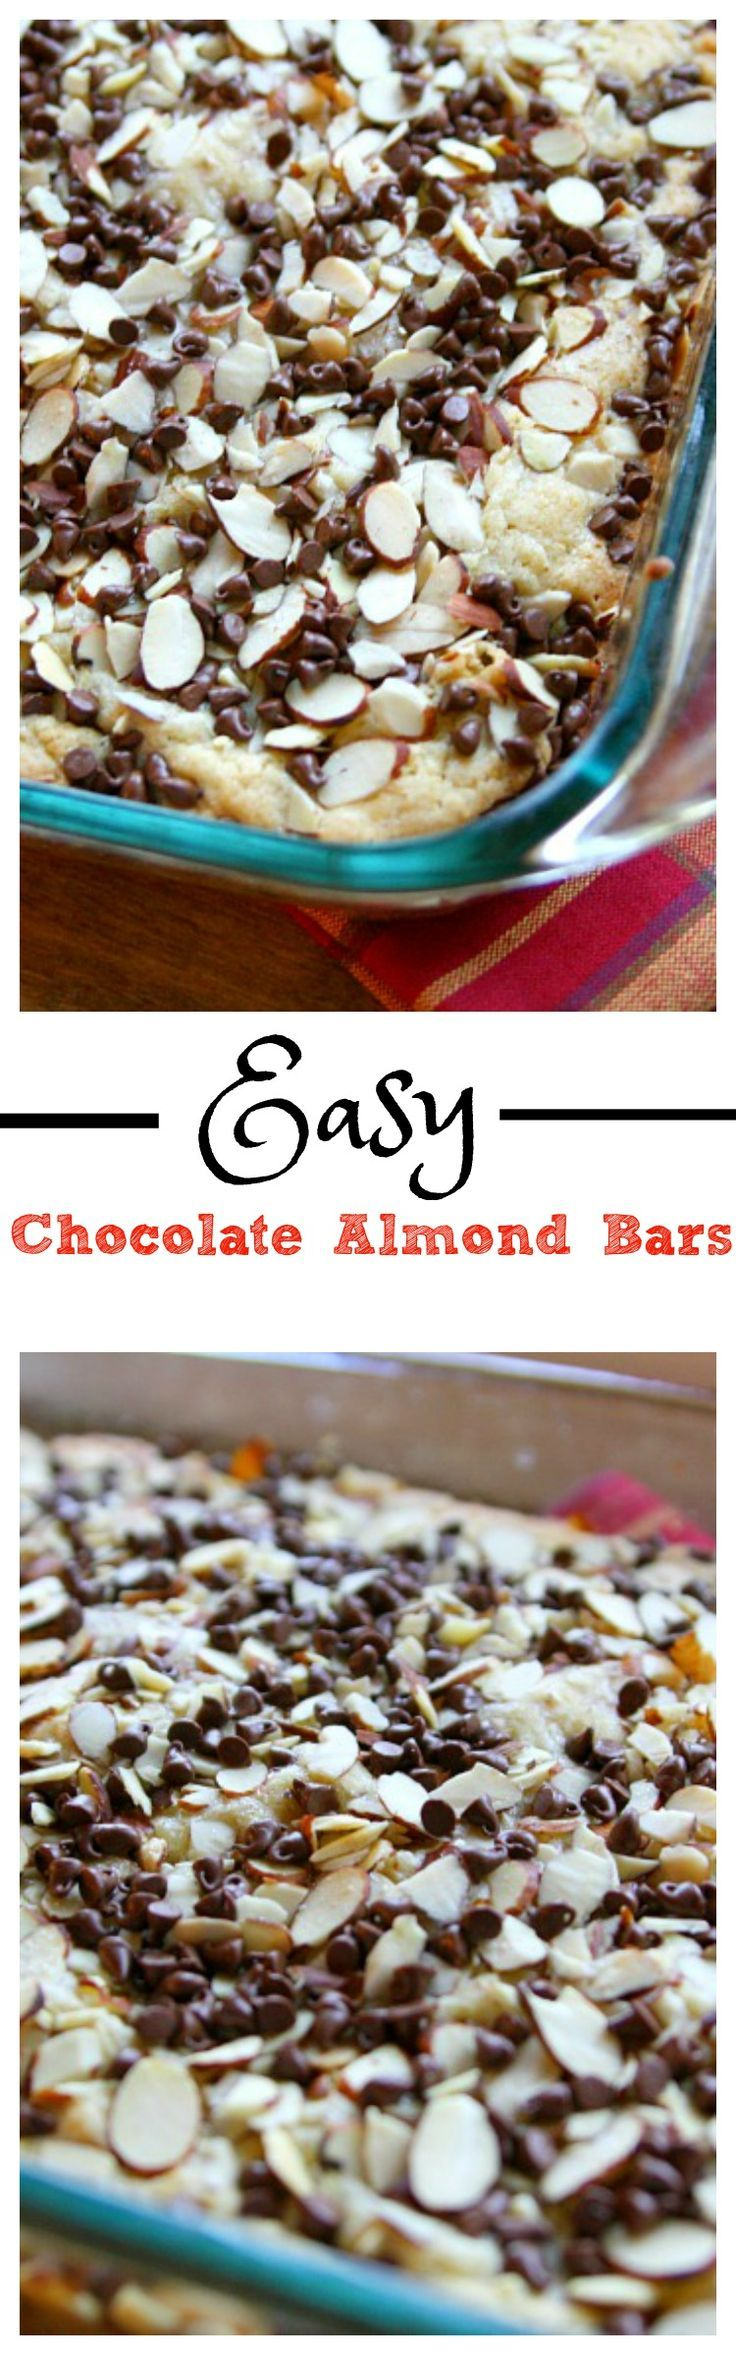 These bars are deliciously sweet and a great accompaniment to a strong black cup of coffee. Or if your taste-tester is freckle-faced and still in elementary school, like mine, a glass of milk would do. Consider this a warning, these bars have equal parts